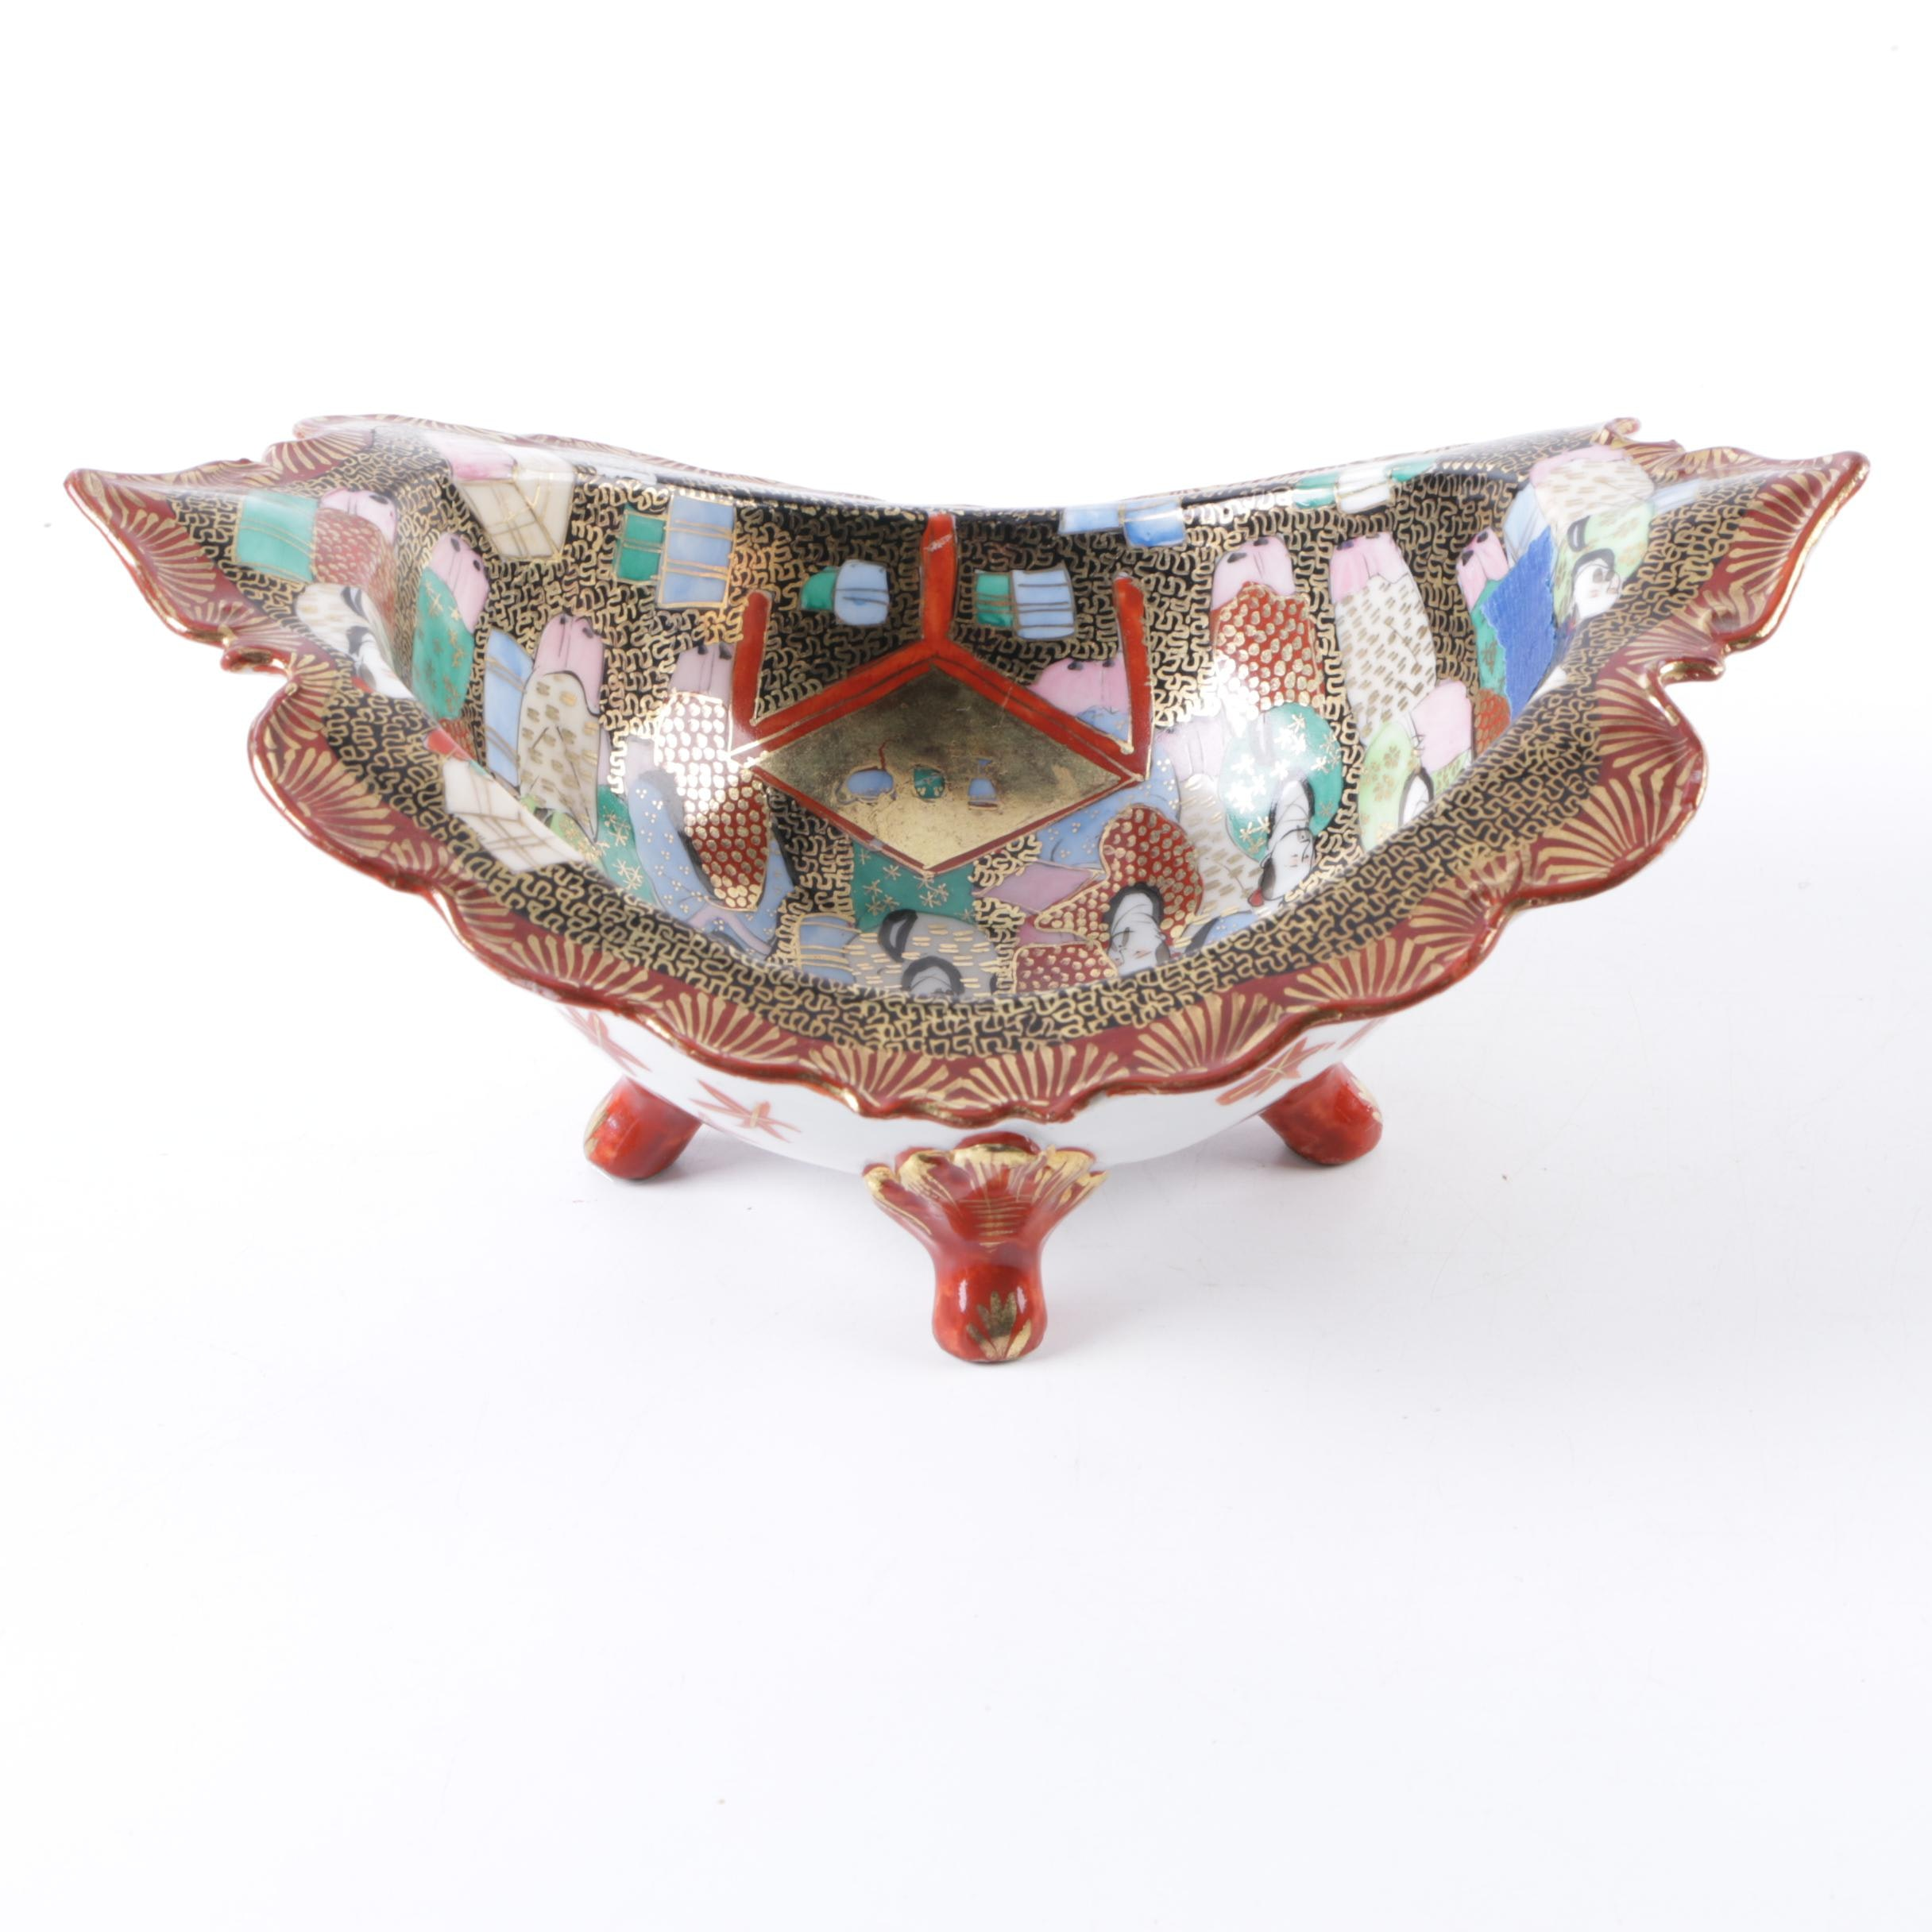 Japanese 'Thousand Faces' Footed Porcelain Dish